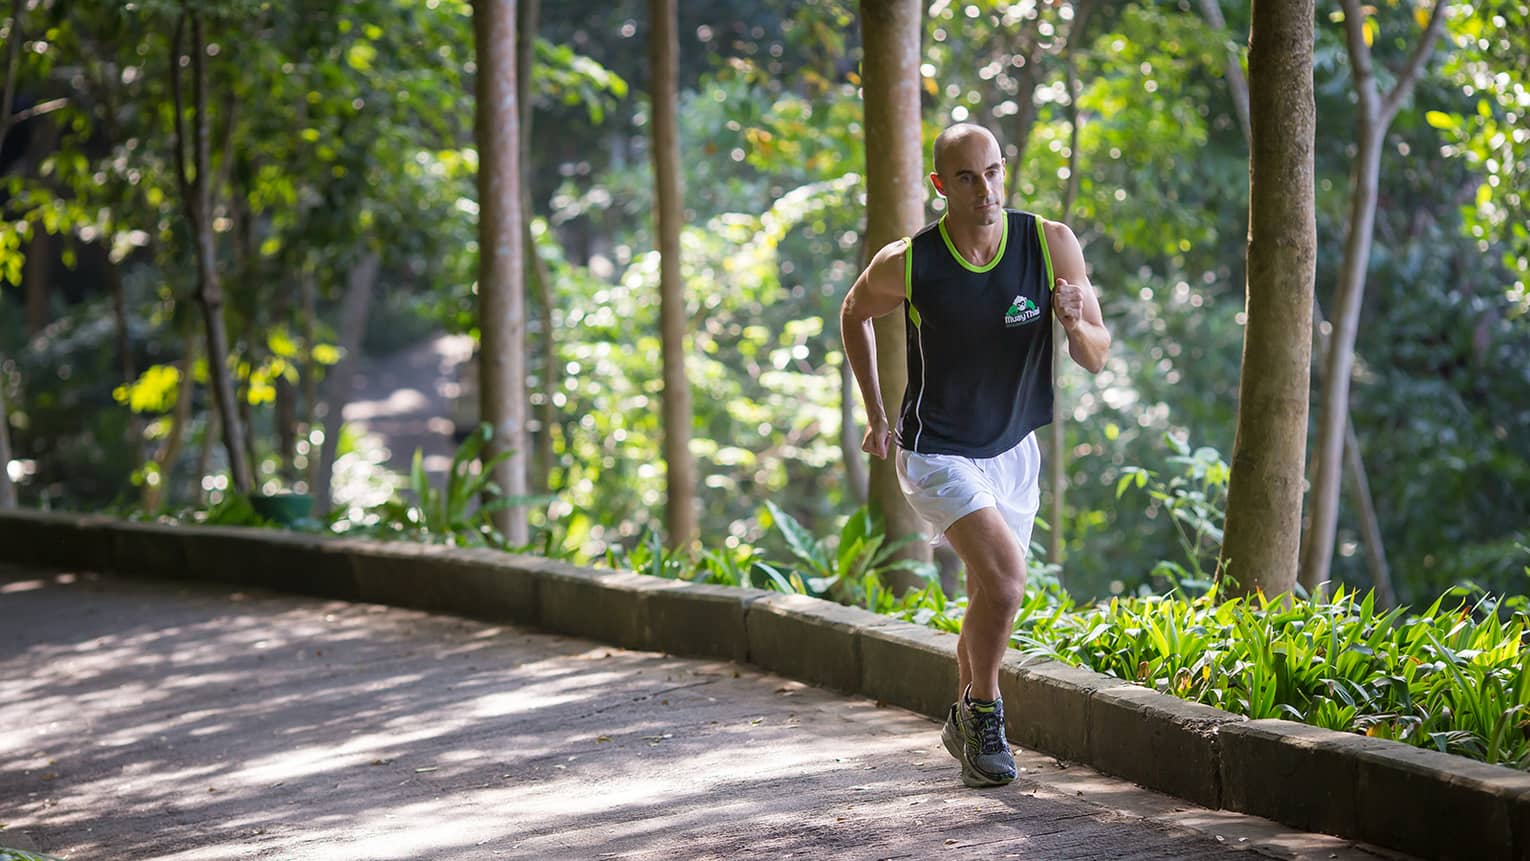 Man in workout shirt, shorts runs up pathway by trees on sunny day